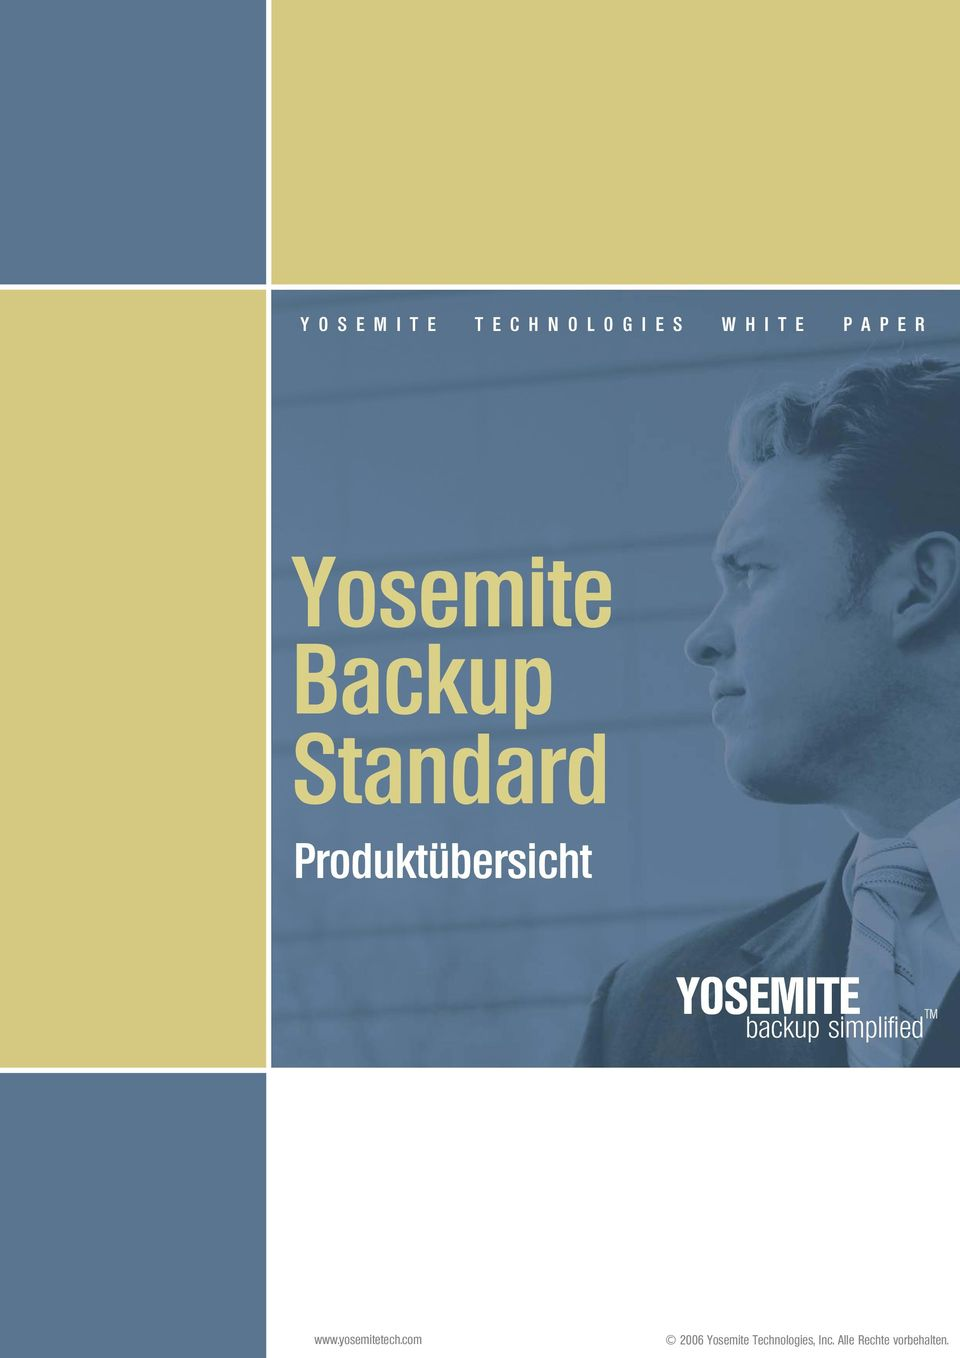 backup simplified TM www.yosemitetech.